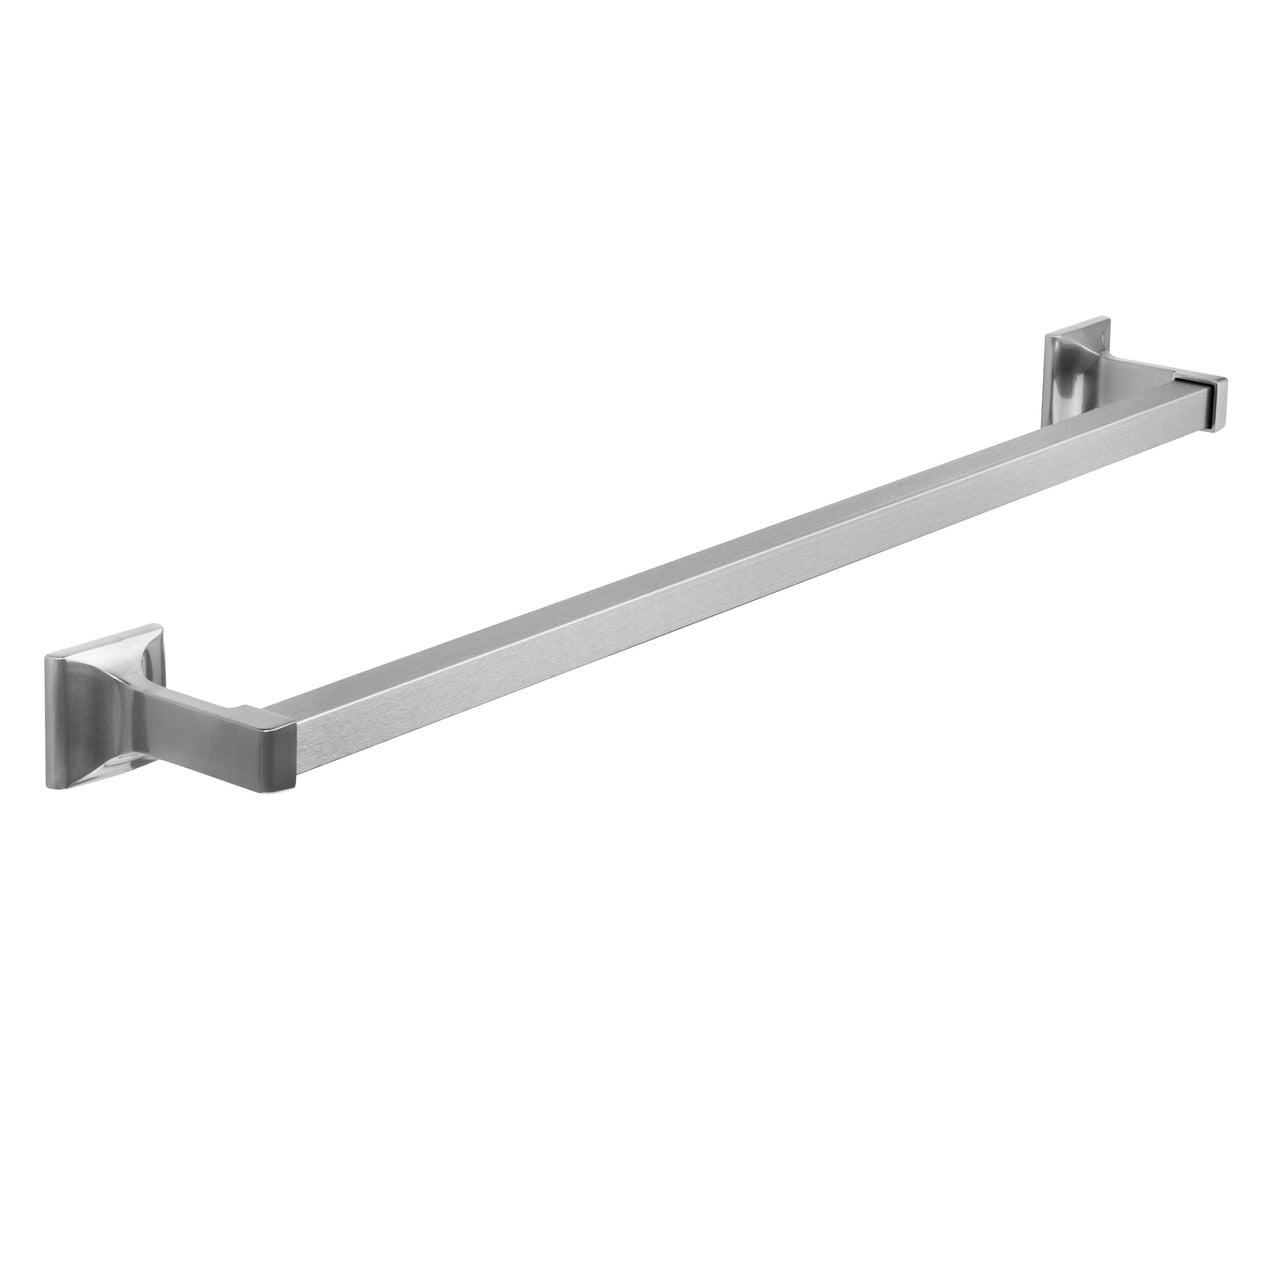 "Designers Impressions Eclipse Series Satin Nickel 24"" Towel Bar"